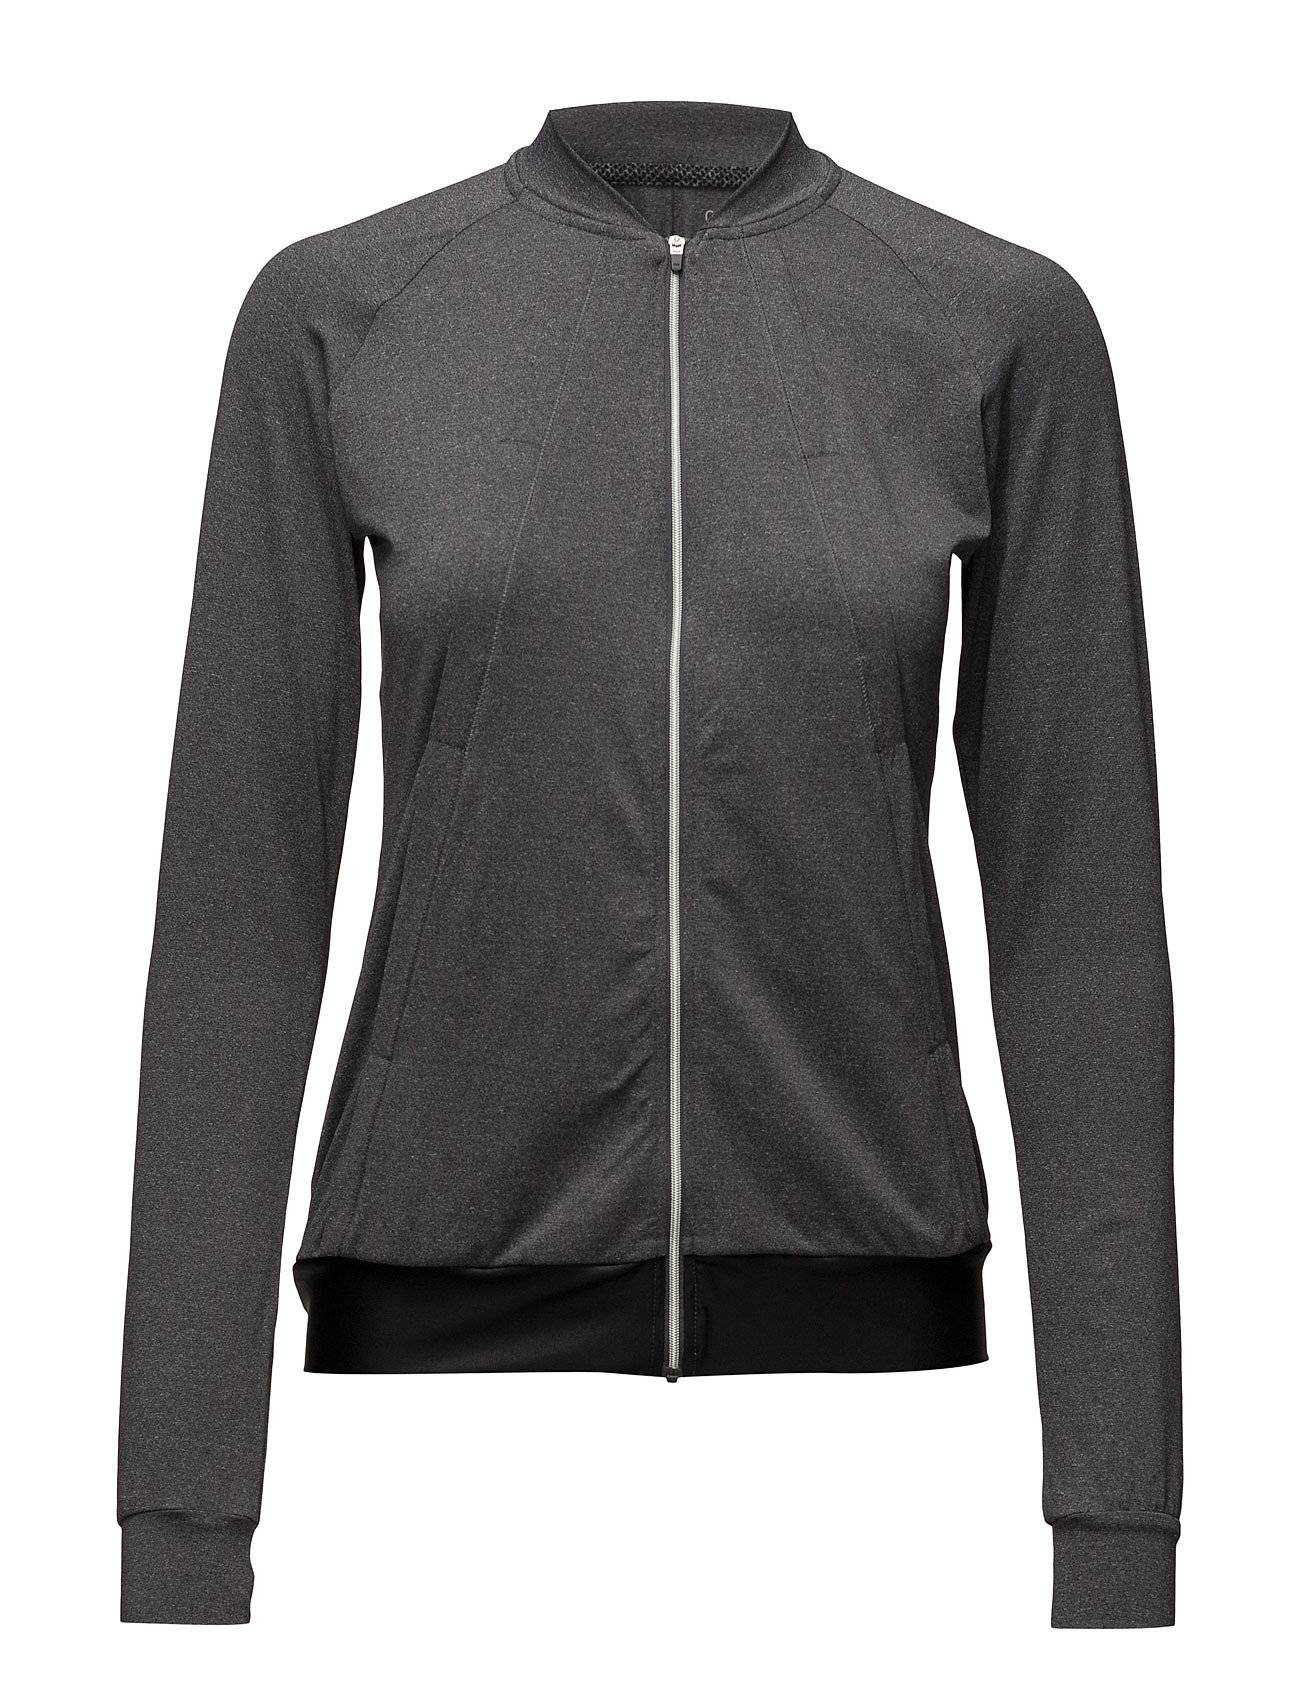 Casall Training Jacket